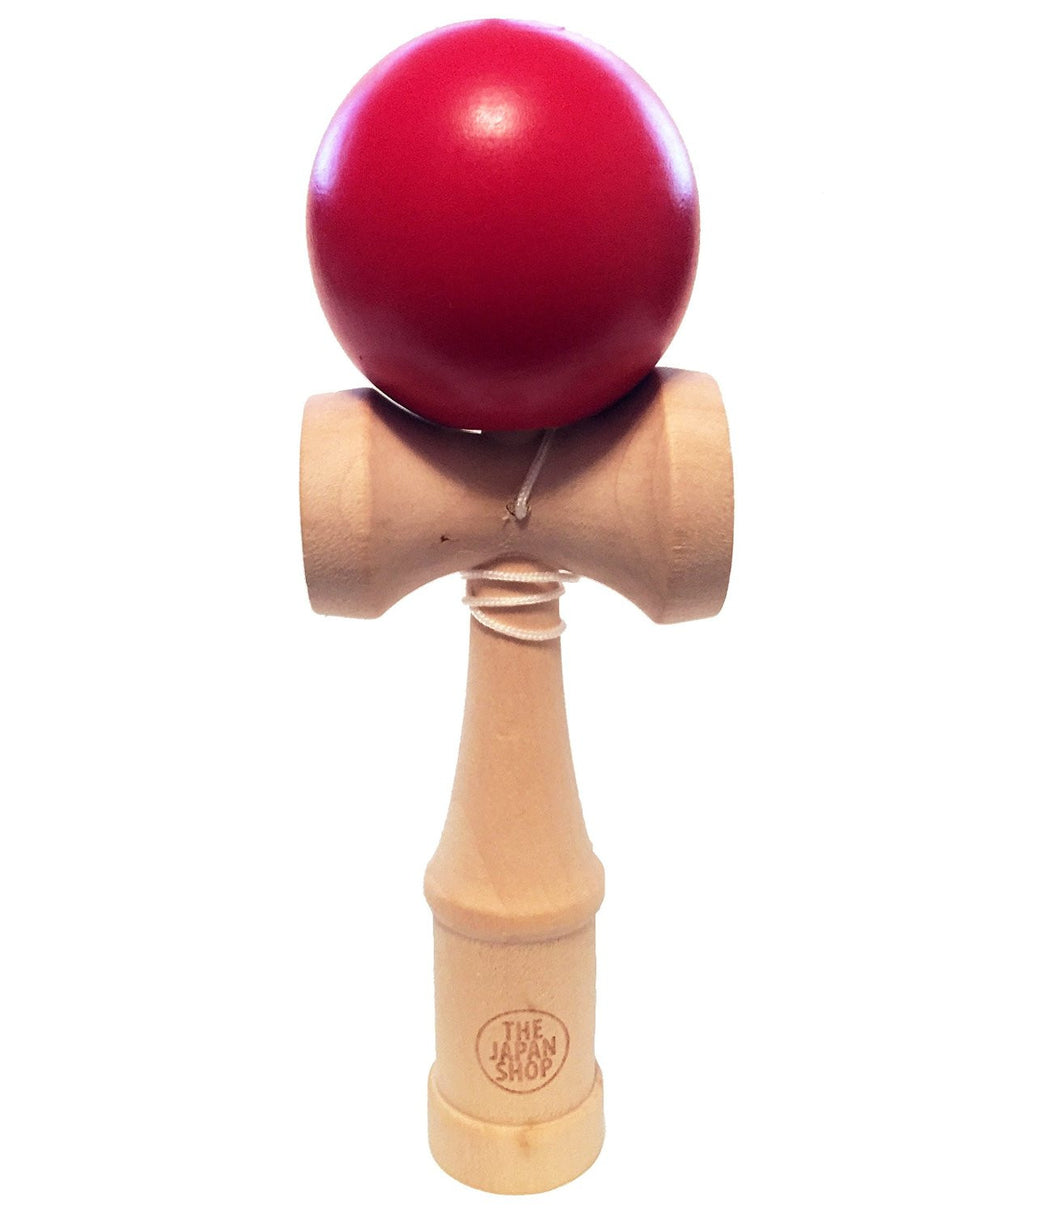 The Japan Shop Full-Sized Kendama Wooden Traditional Japanese Toy - The Japan Shop